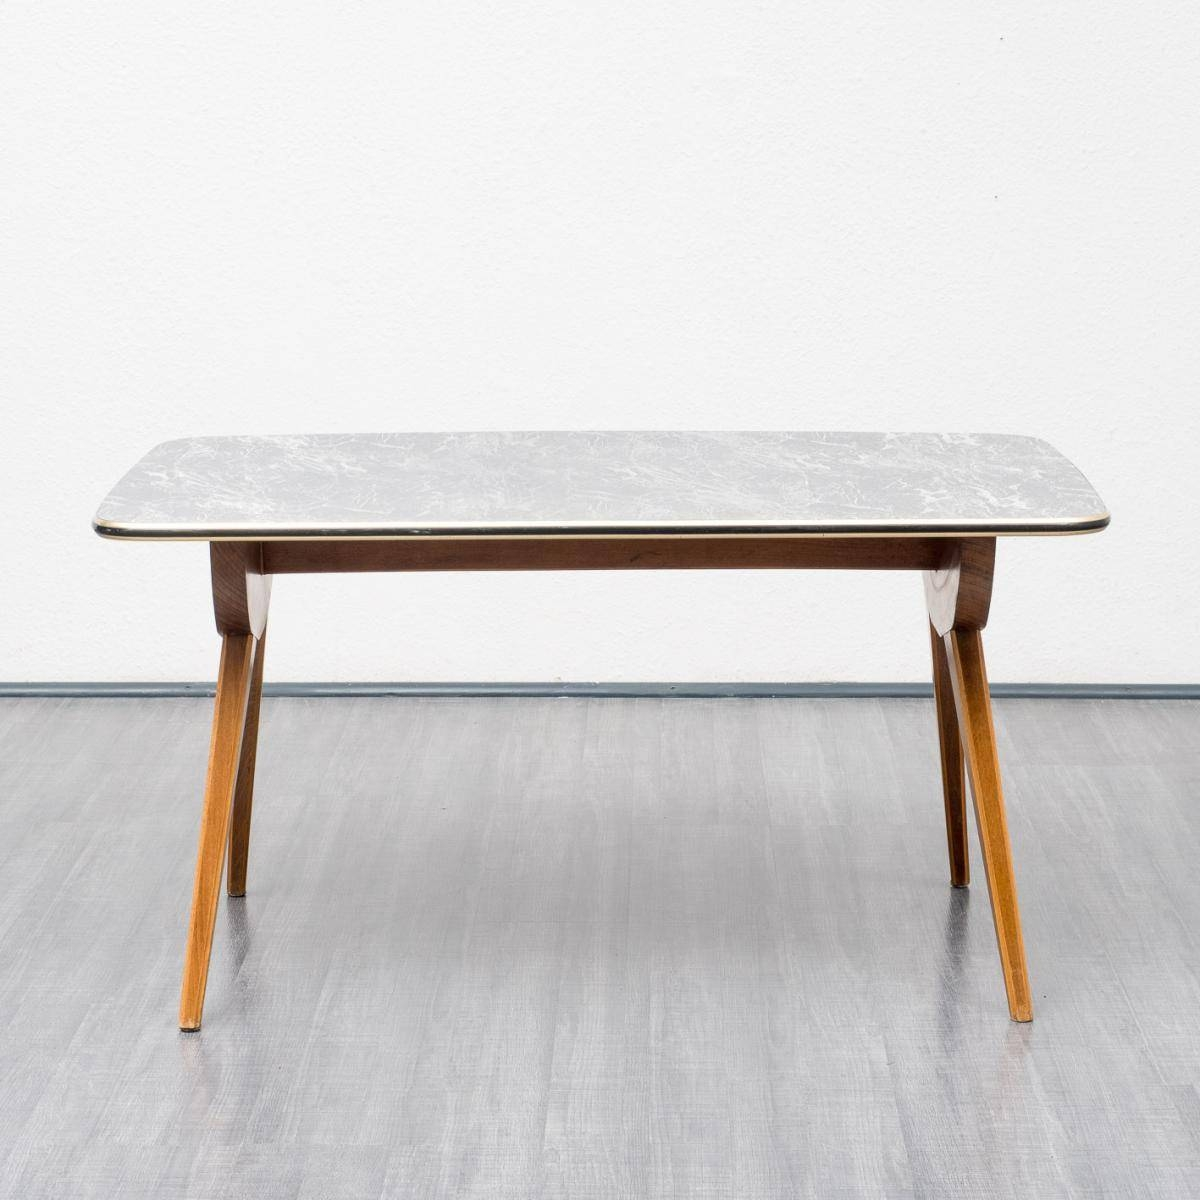 Vintage Coffee Table With Scissor Legs, 1950S For Sale At Pamono regarding White Retro Coffee Tables (Image 26 of 30)